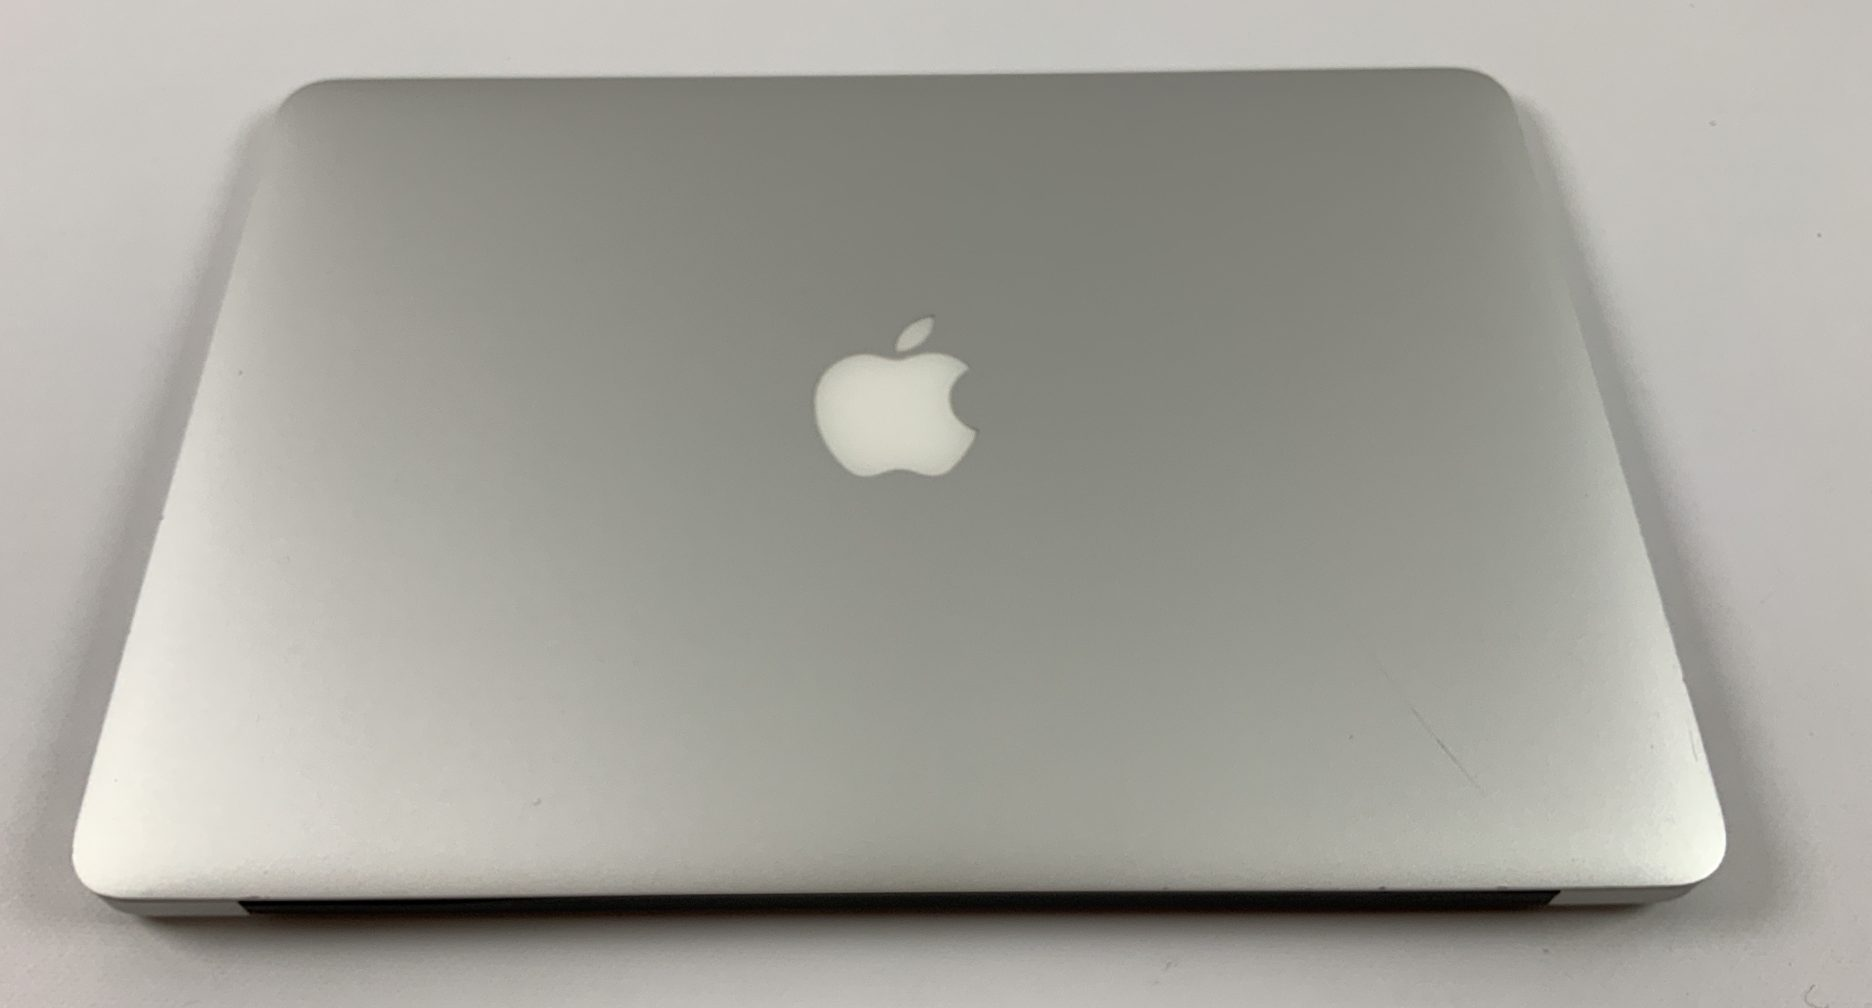 "MacBook Air 13"" Early 2015 (Intel Core i5 1.6 GHz 4 GB RAM 128 GB SSD), Intel Core i5 1.6 GHz, 4 GB RAM, 128 GB SSD, Kuva 2"